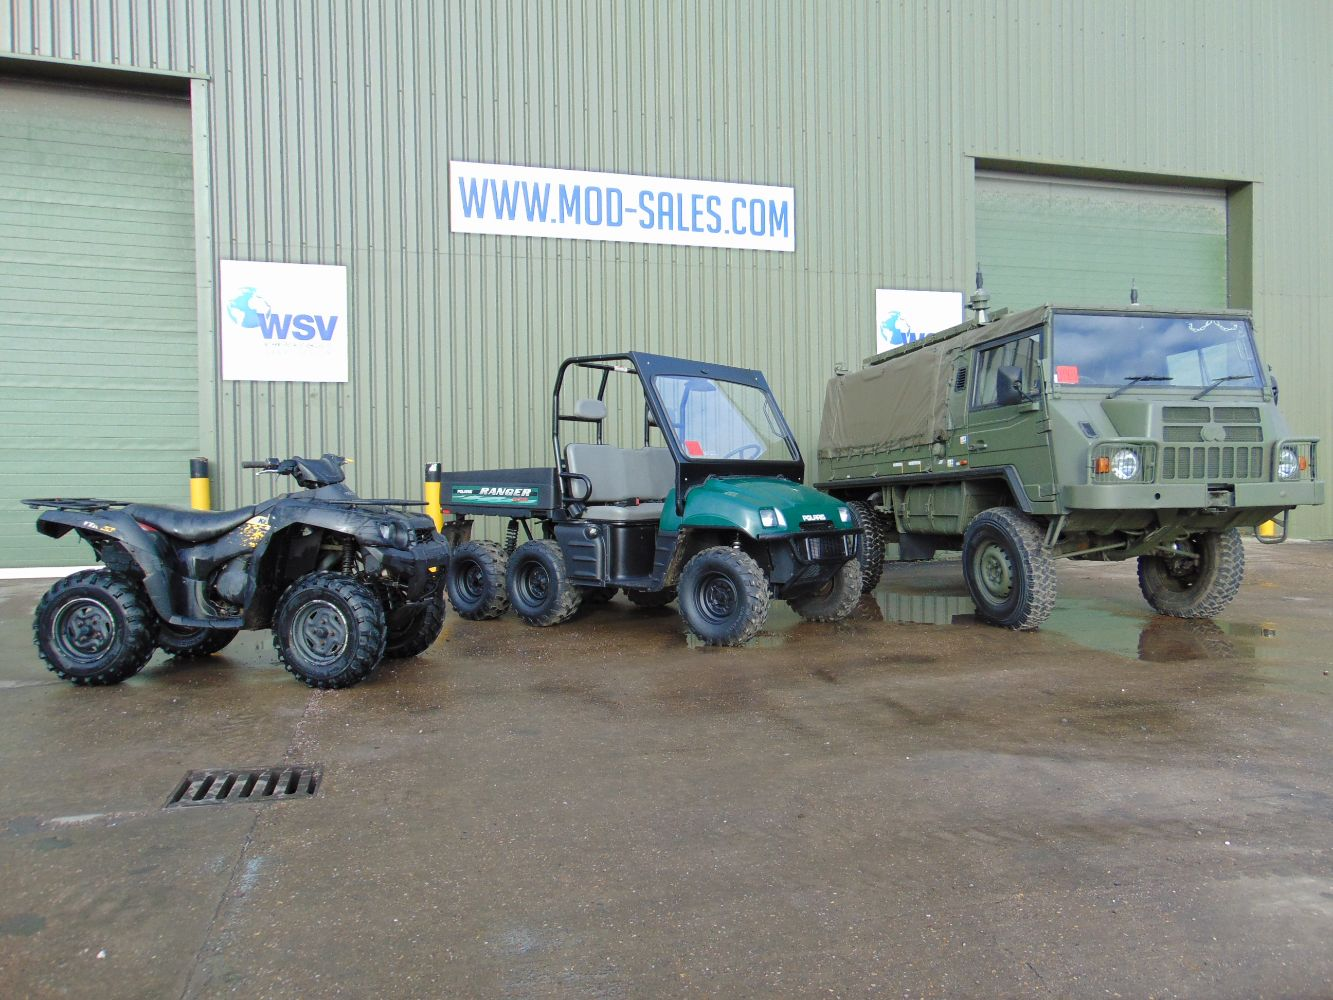 March Online Auction Direct from UK Government Departments, Ex MoD, Fire & Rescue, National Contracts & Companies. * NEW ITEMS ADDED DAILY *